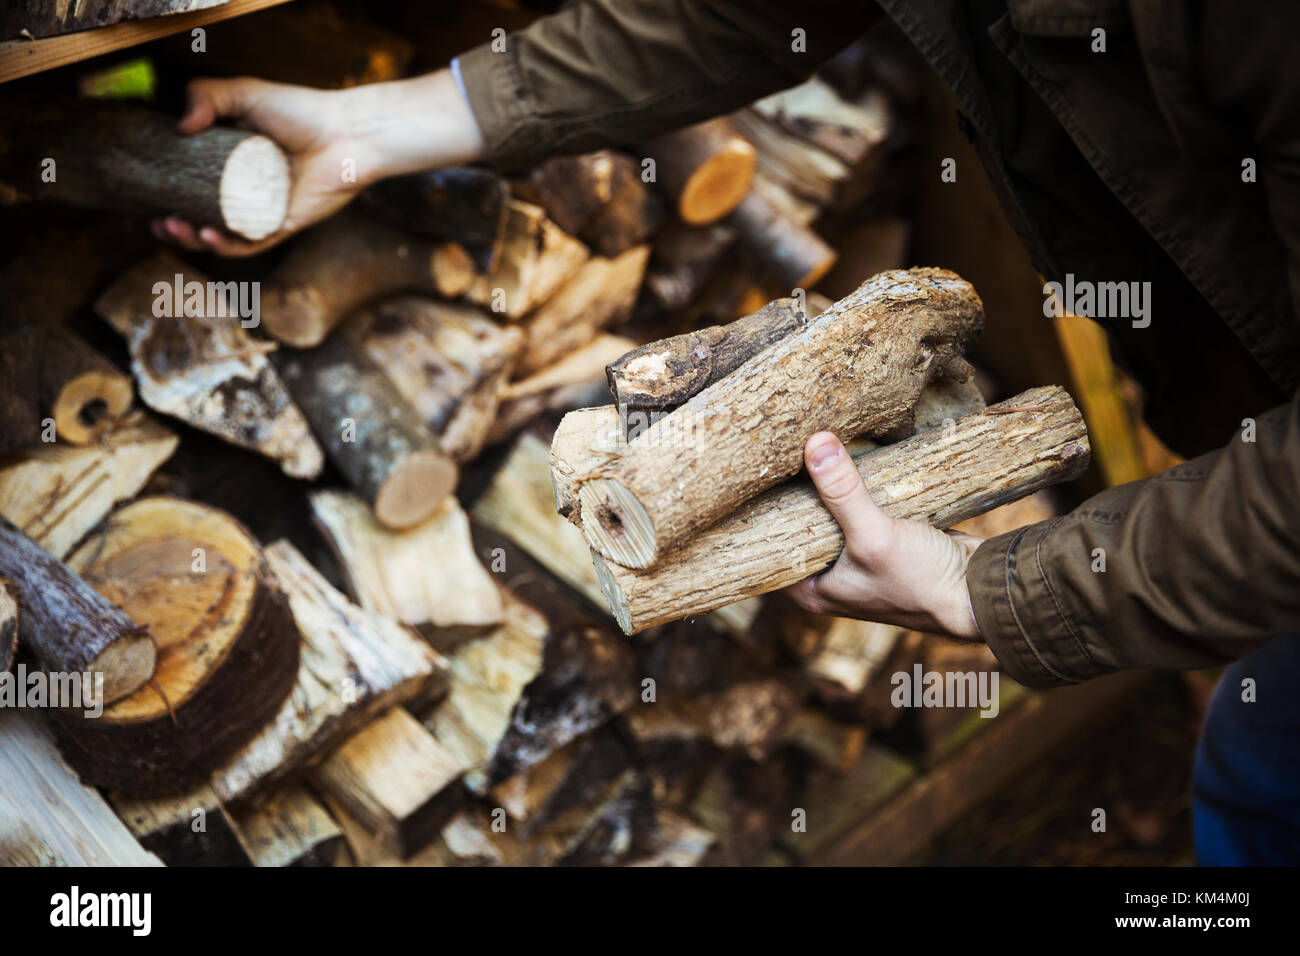 A man stacking logs, wood of different lengths. A firewood store. - Stock Image